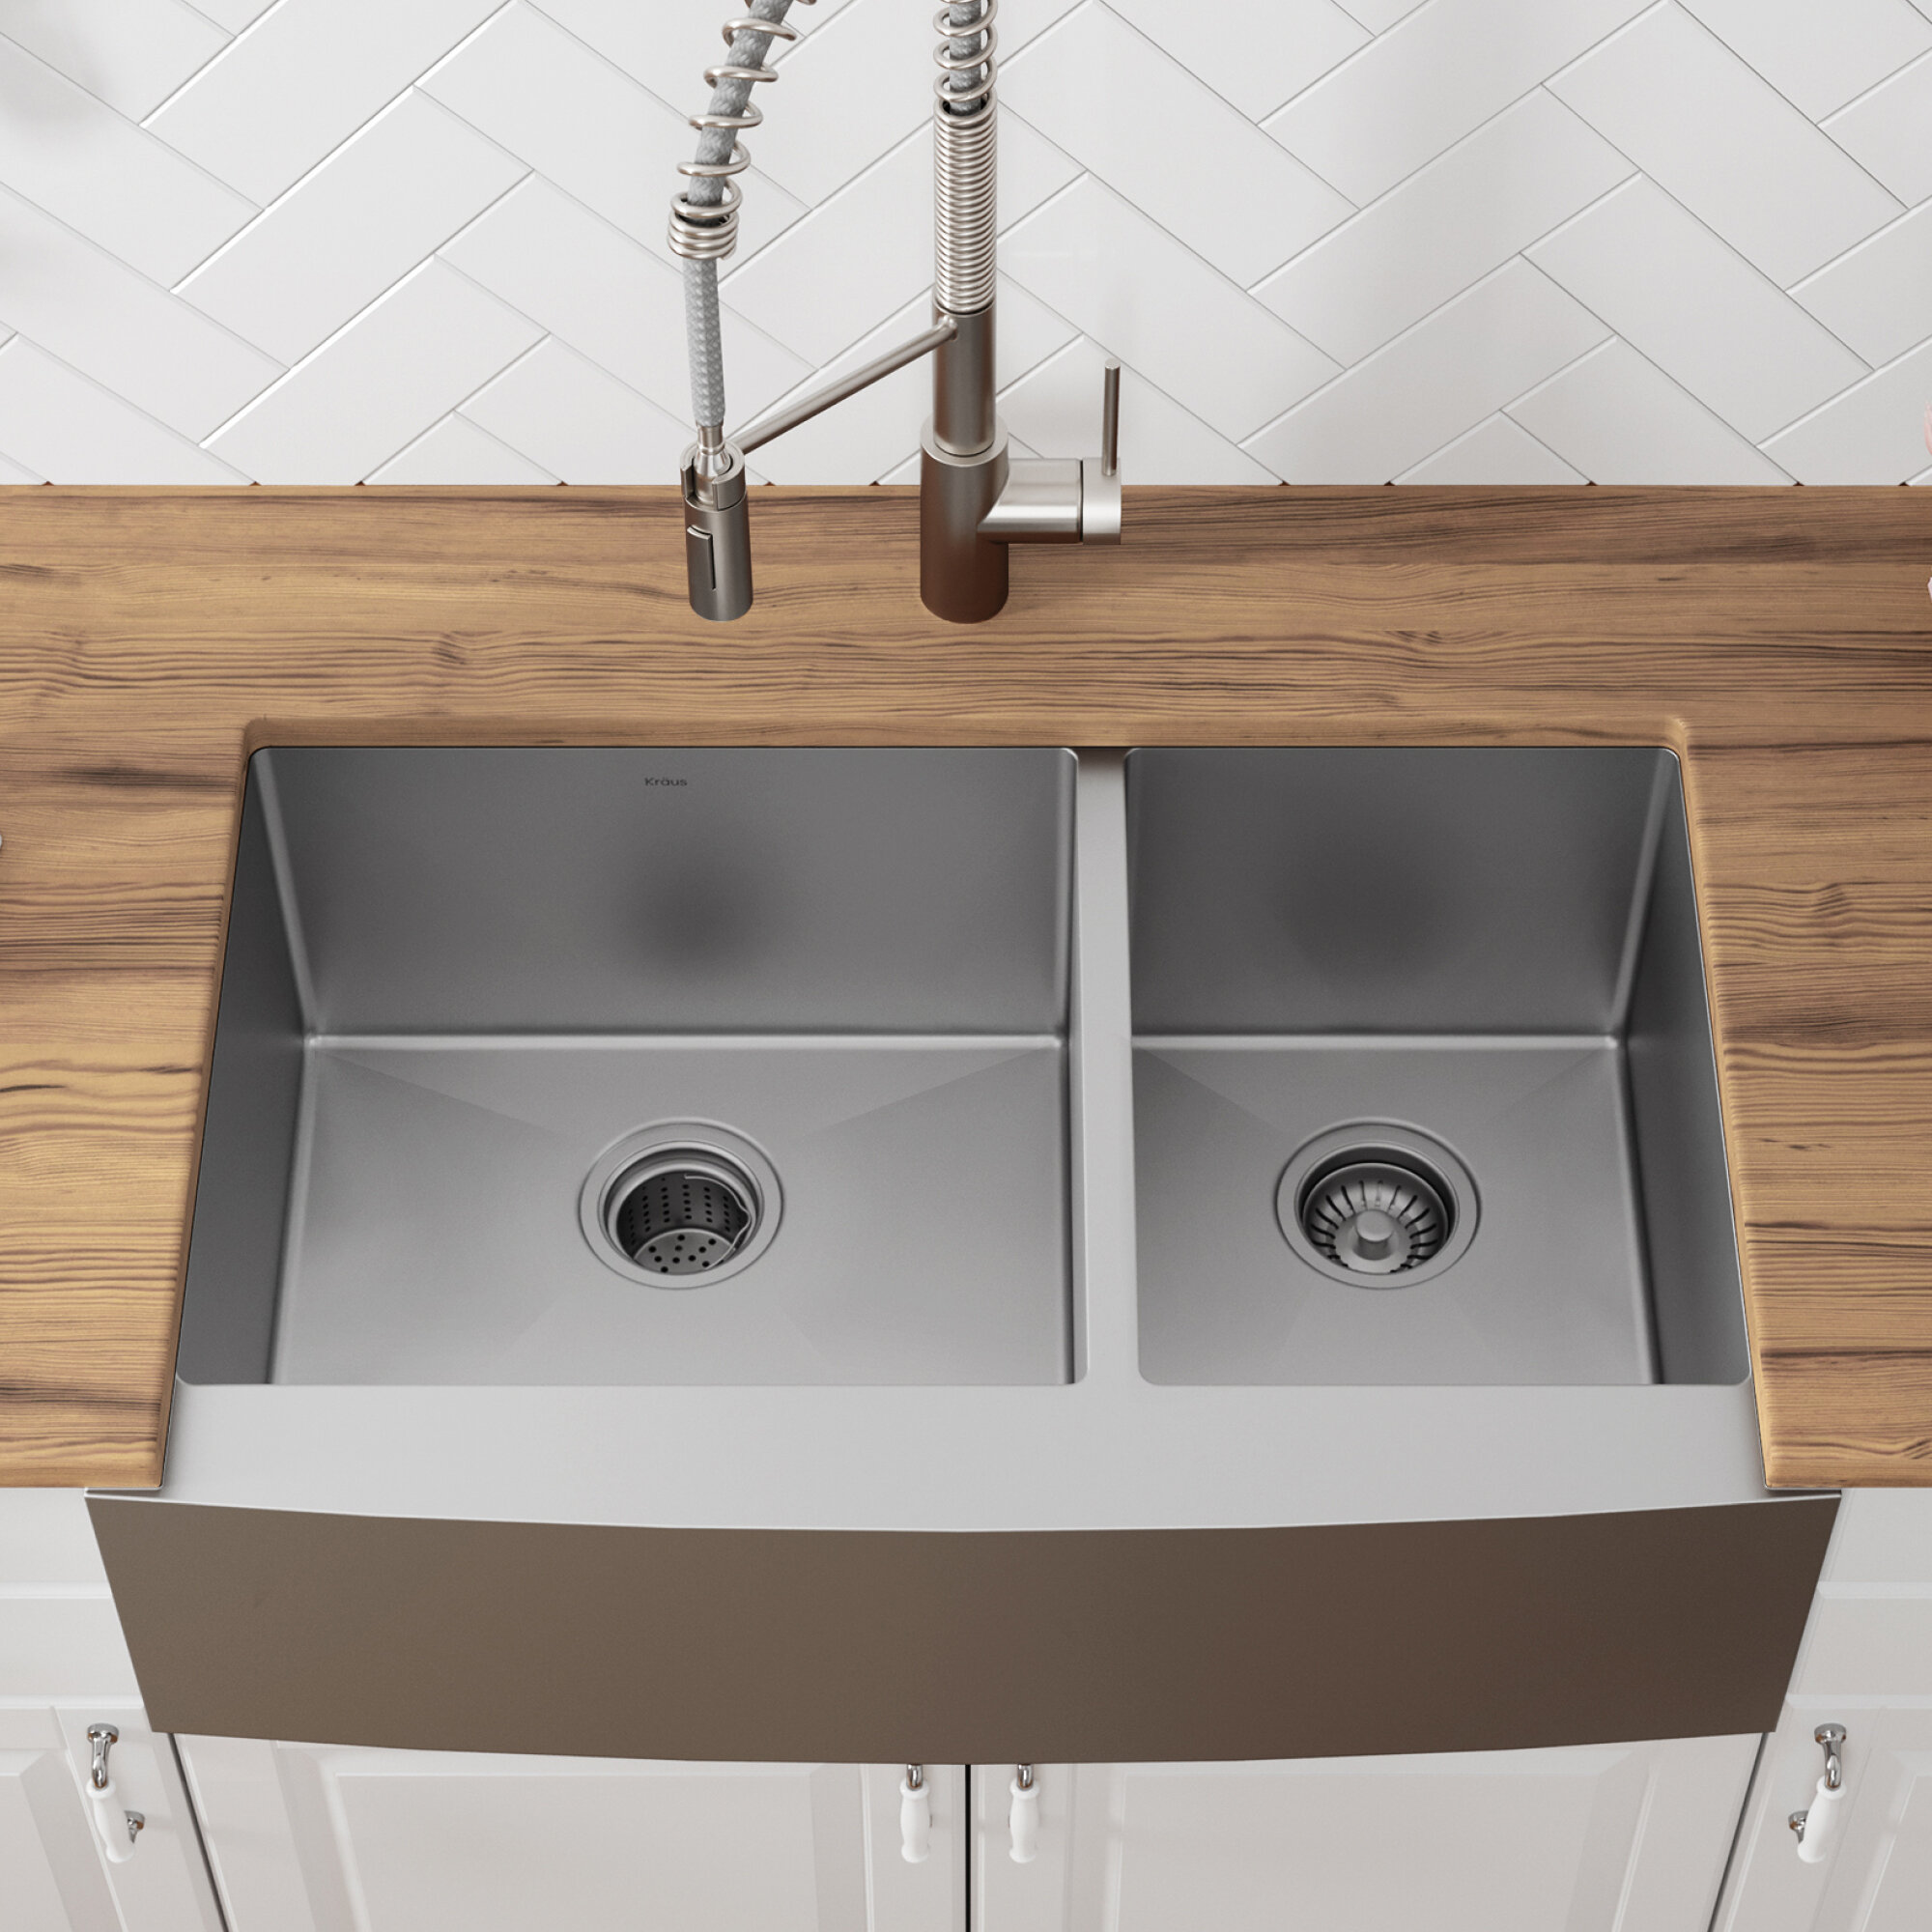 Kraus 36 l x 21 w double basin farmhouse kitchen sink with drain assembly reviews wayfair